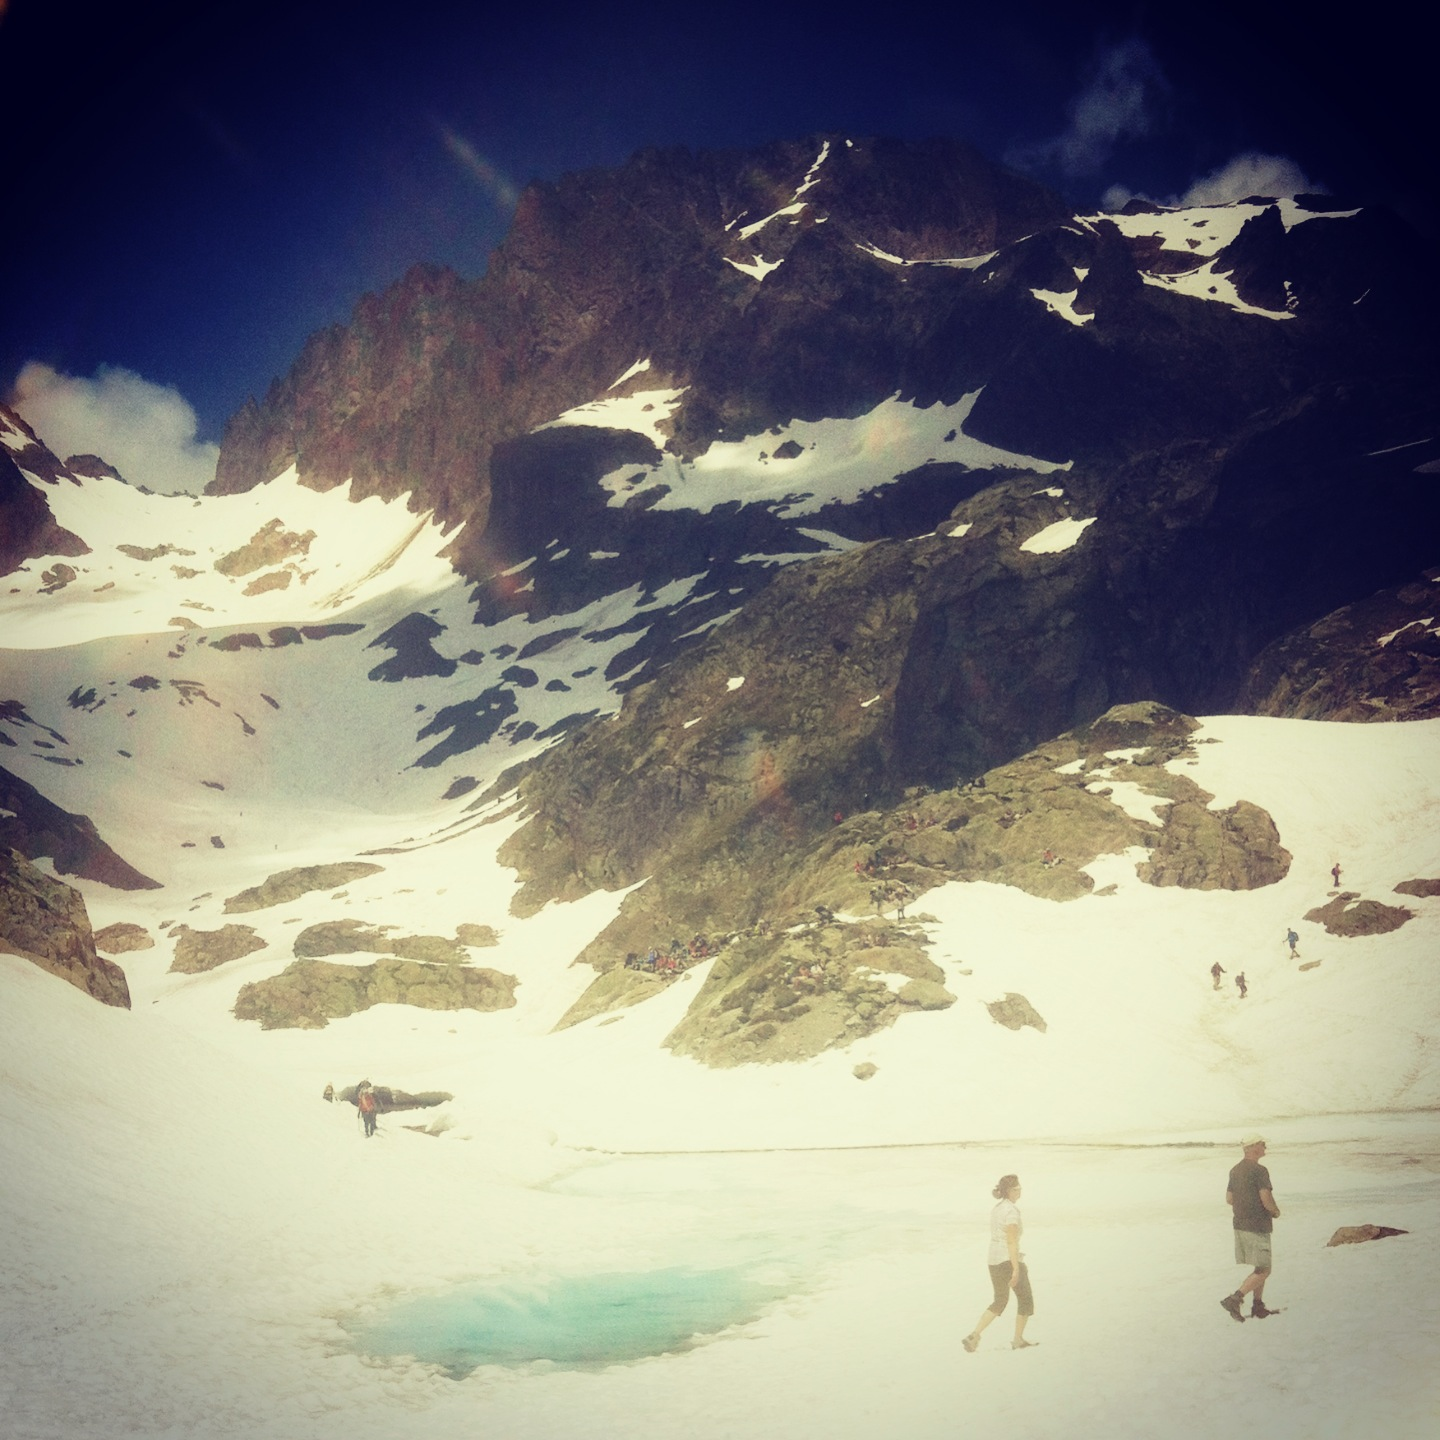 Lac Blanc in the summer snow